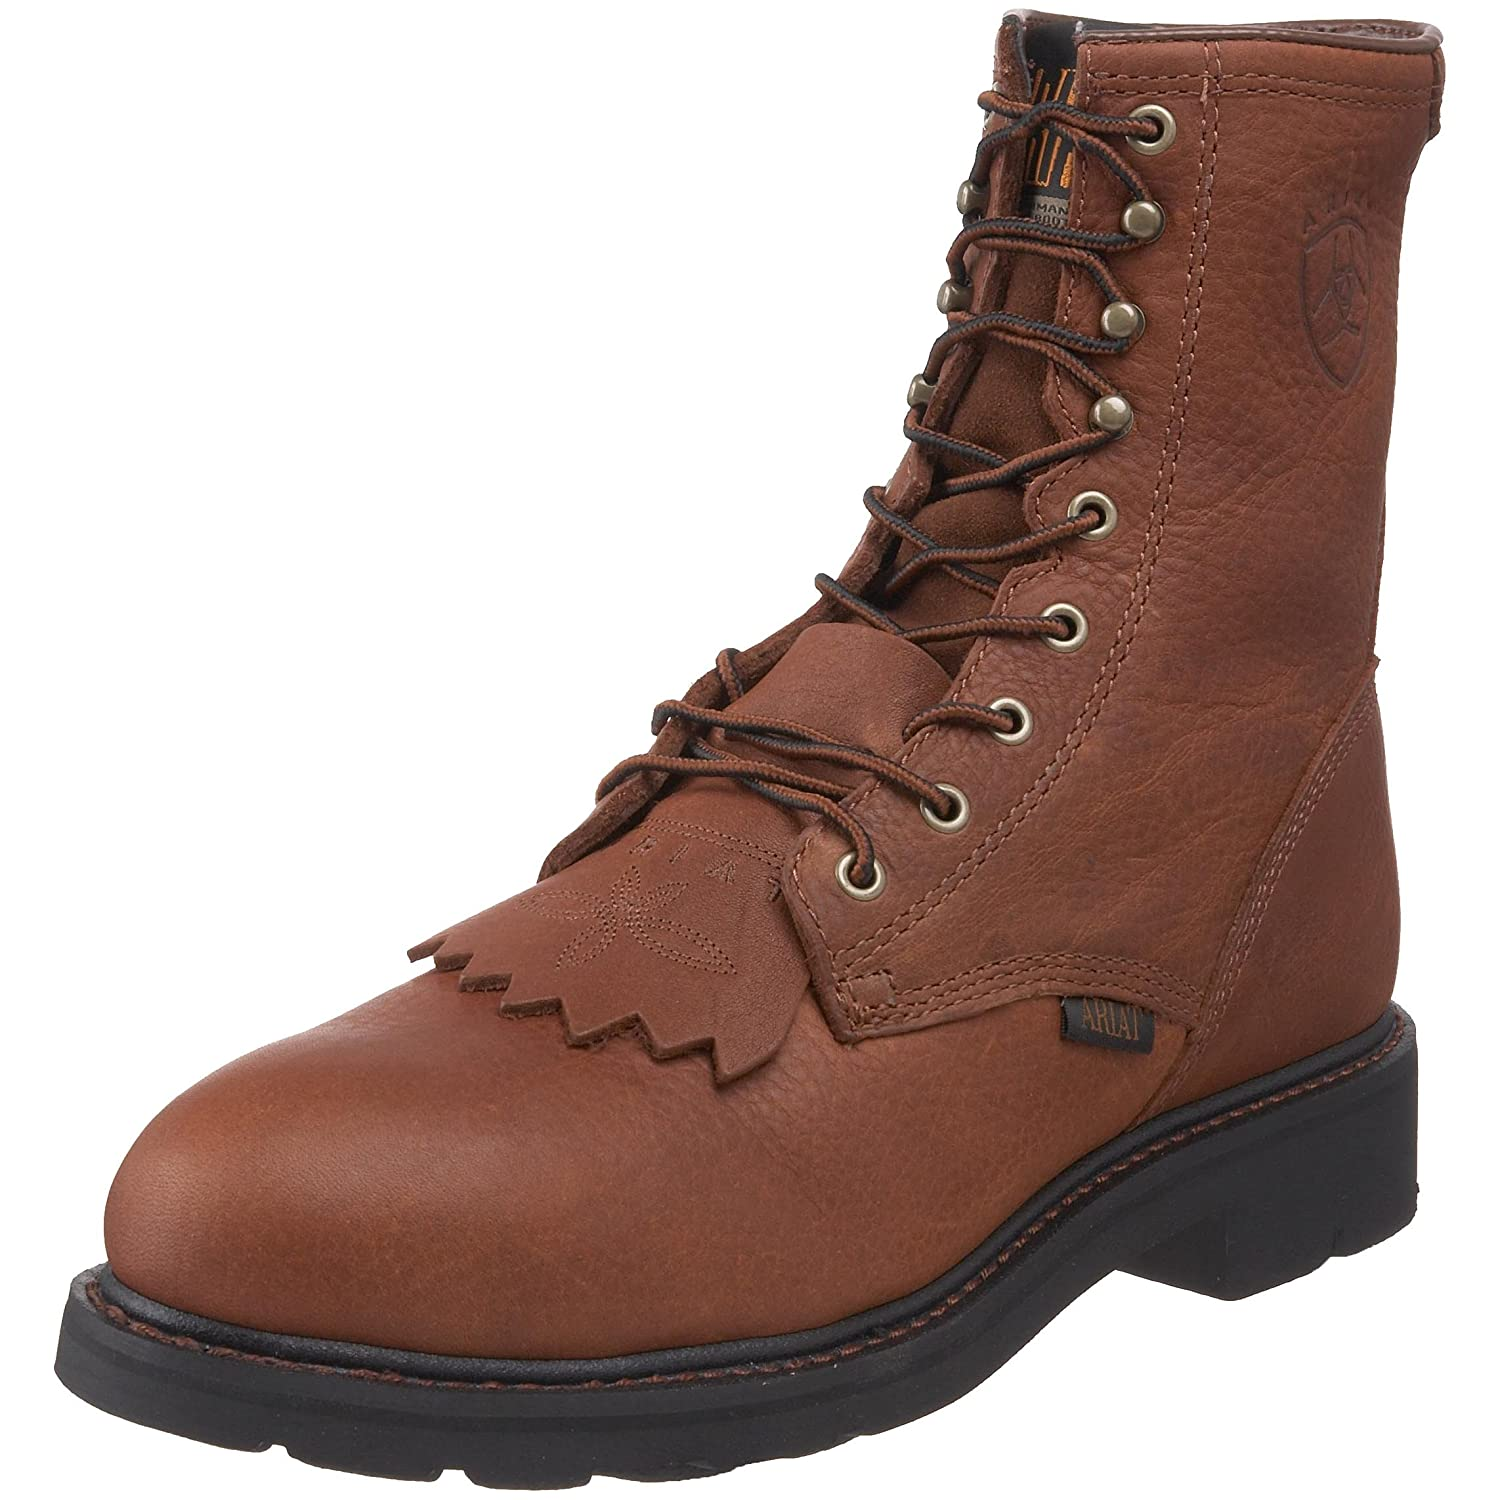 j steel eu comfortable shoes uk men mens s hi x boots work comfort quad dakota comforter toe